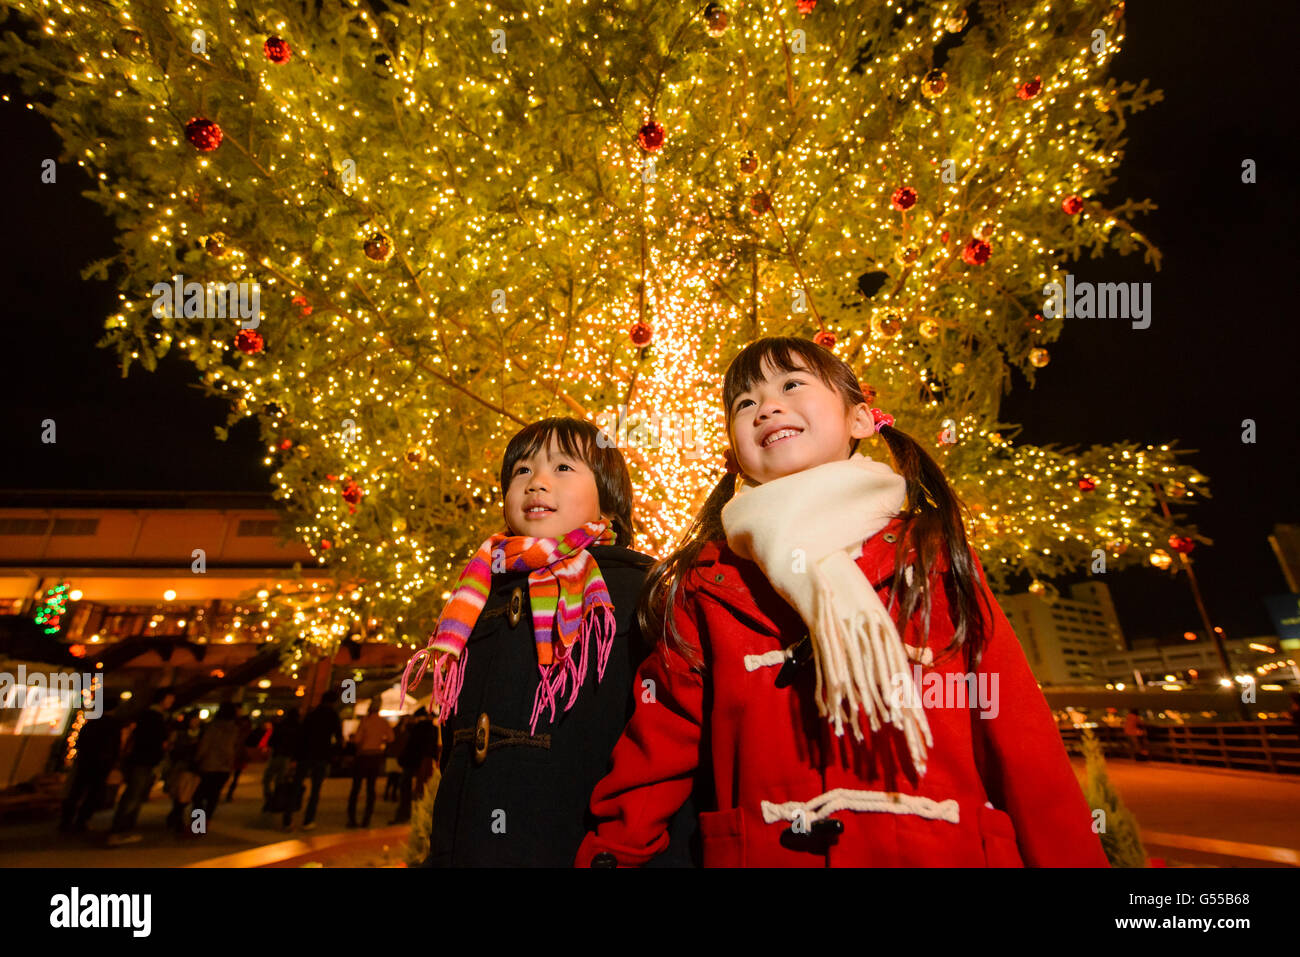 Japanese Kids Under Outdoor Christmas Tree Stock Photo Royalty  - Japanese Christmas Tree